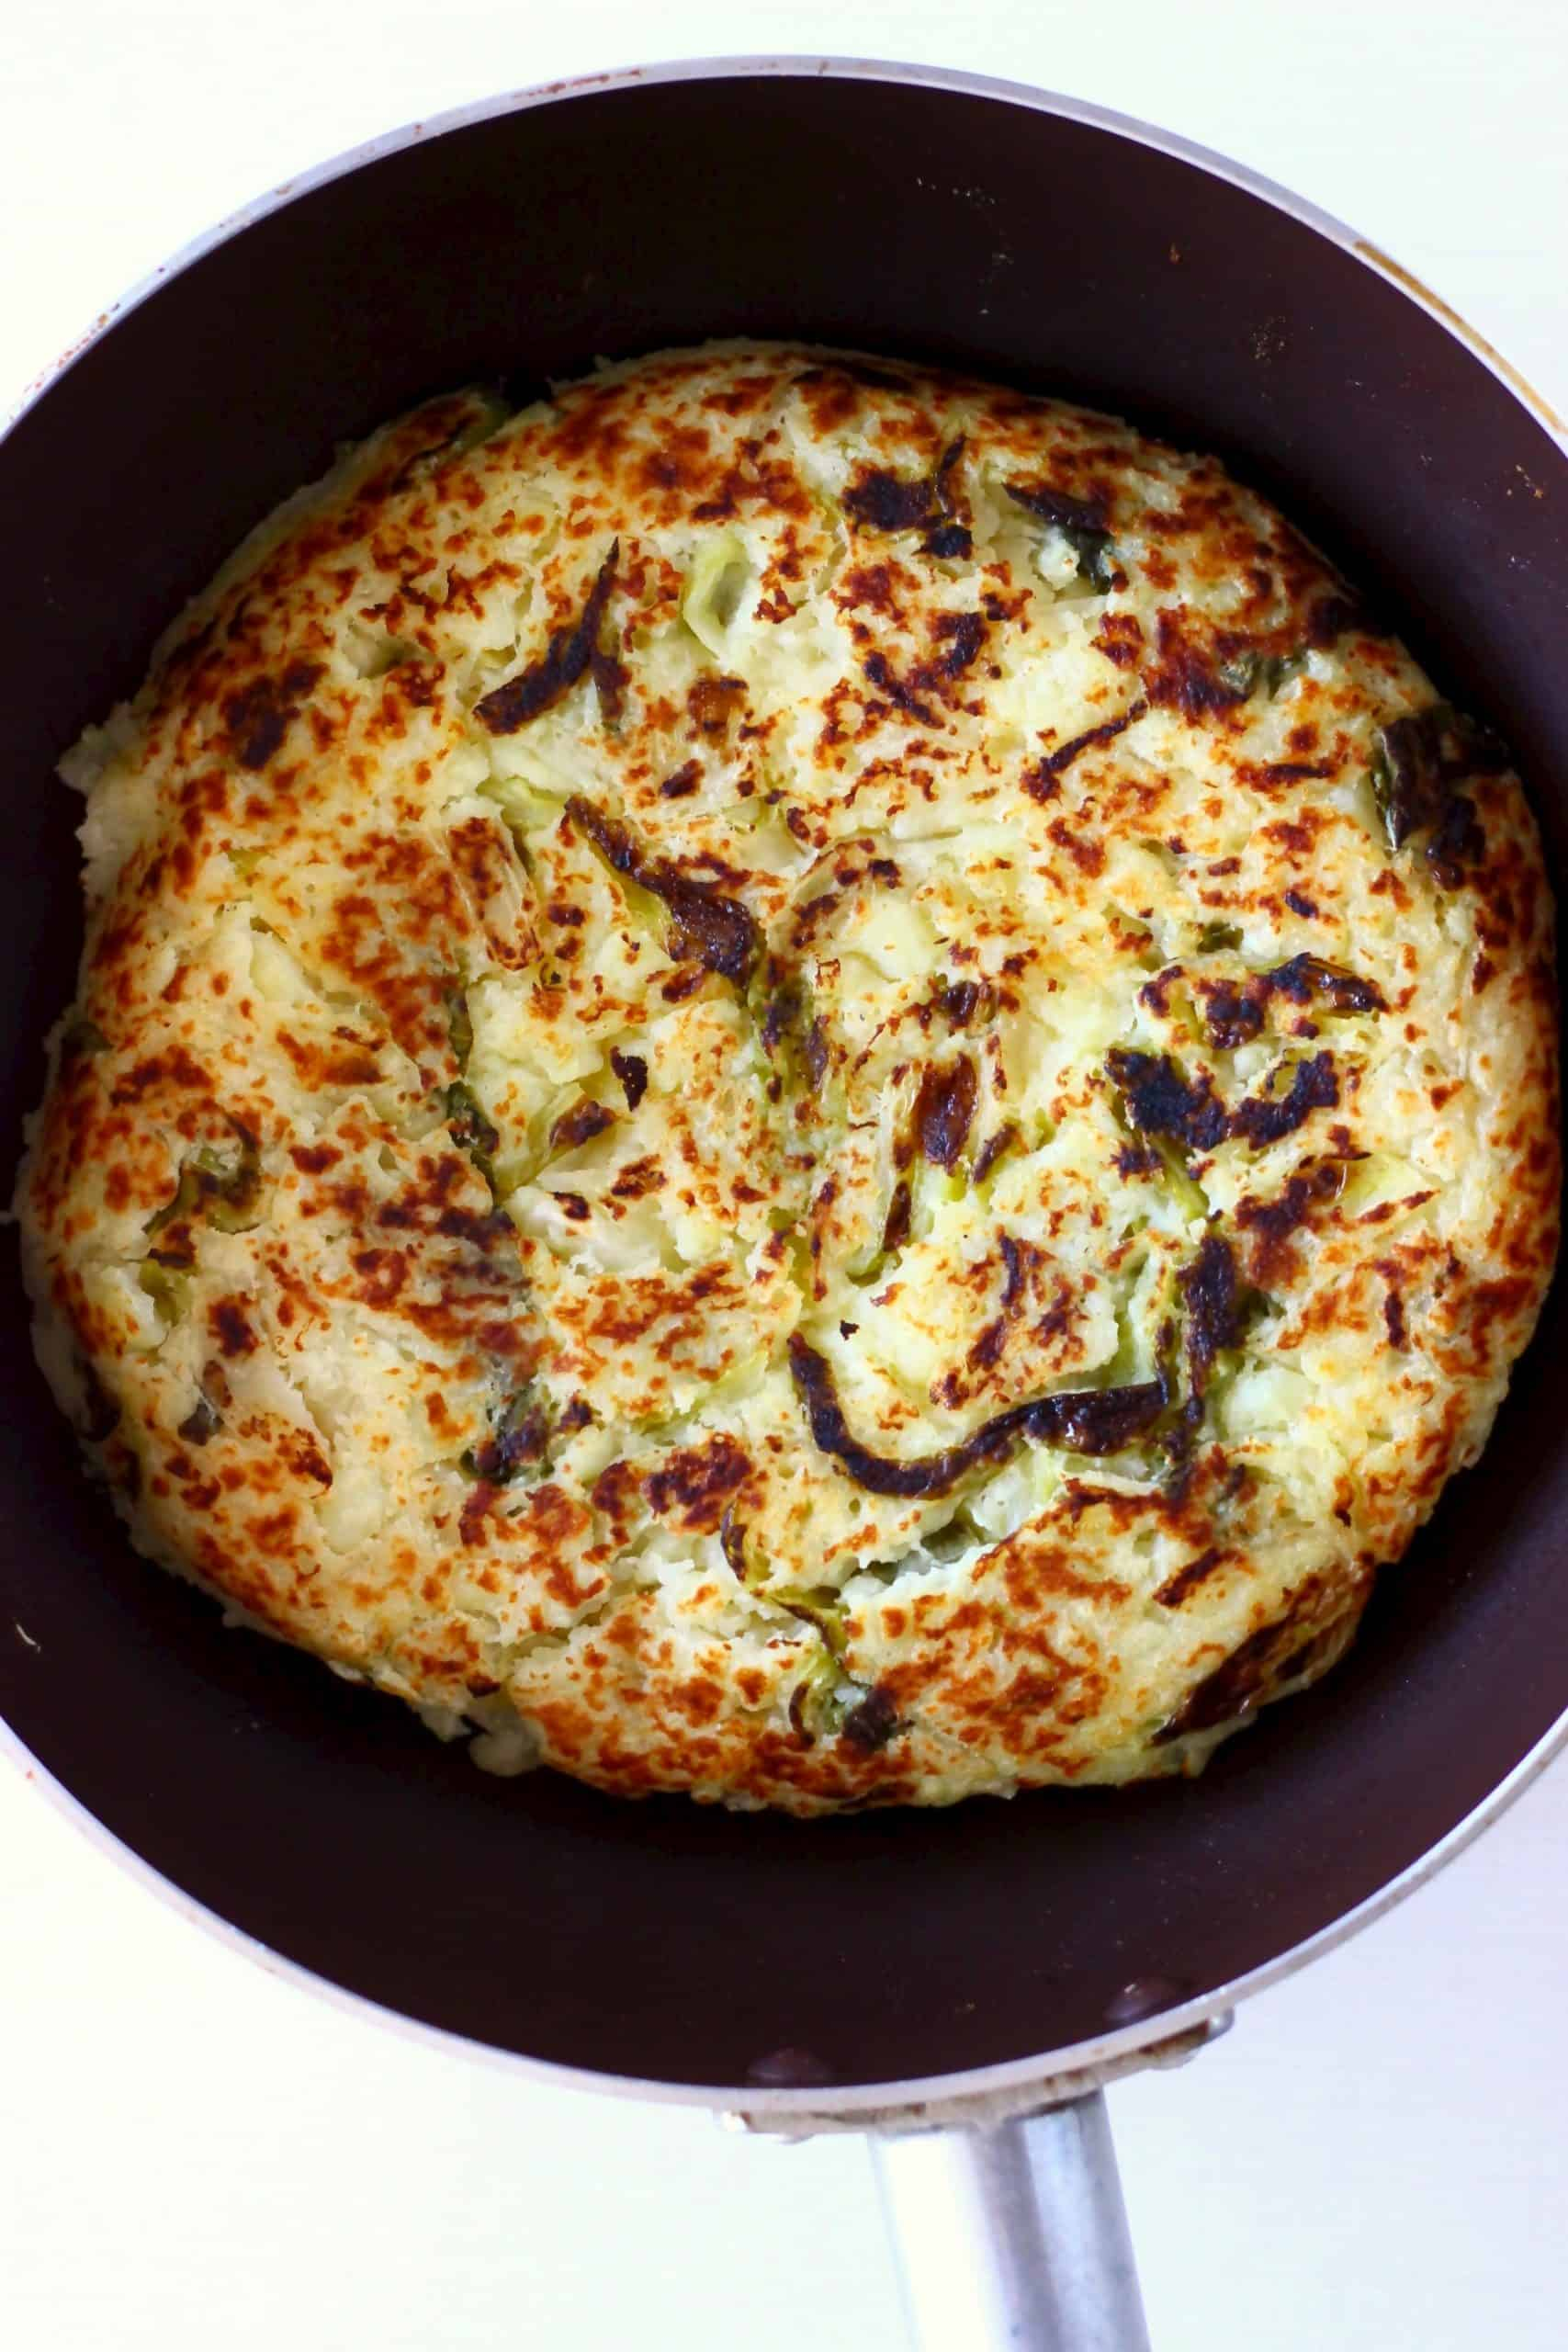 A circular, golden brown bubble and squeak cake in a dark frying pan